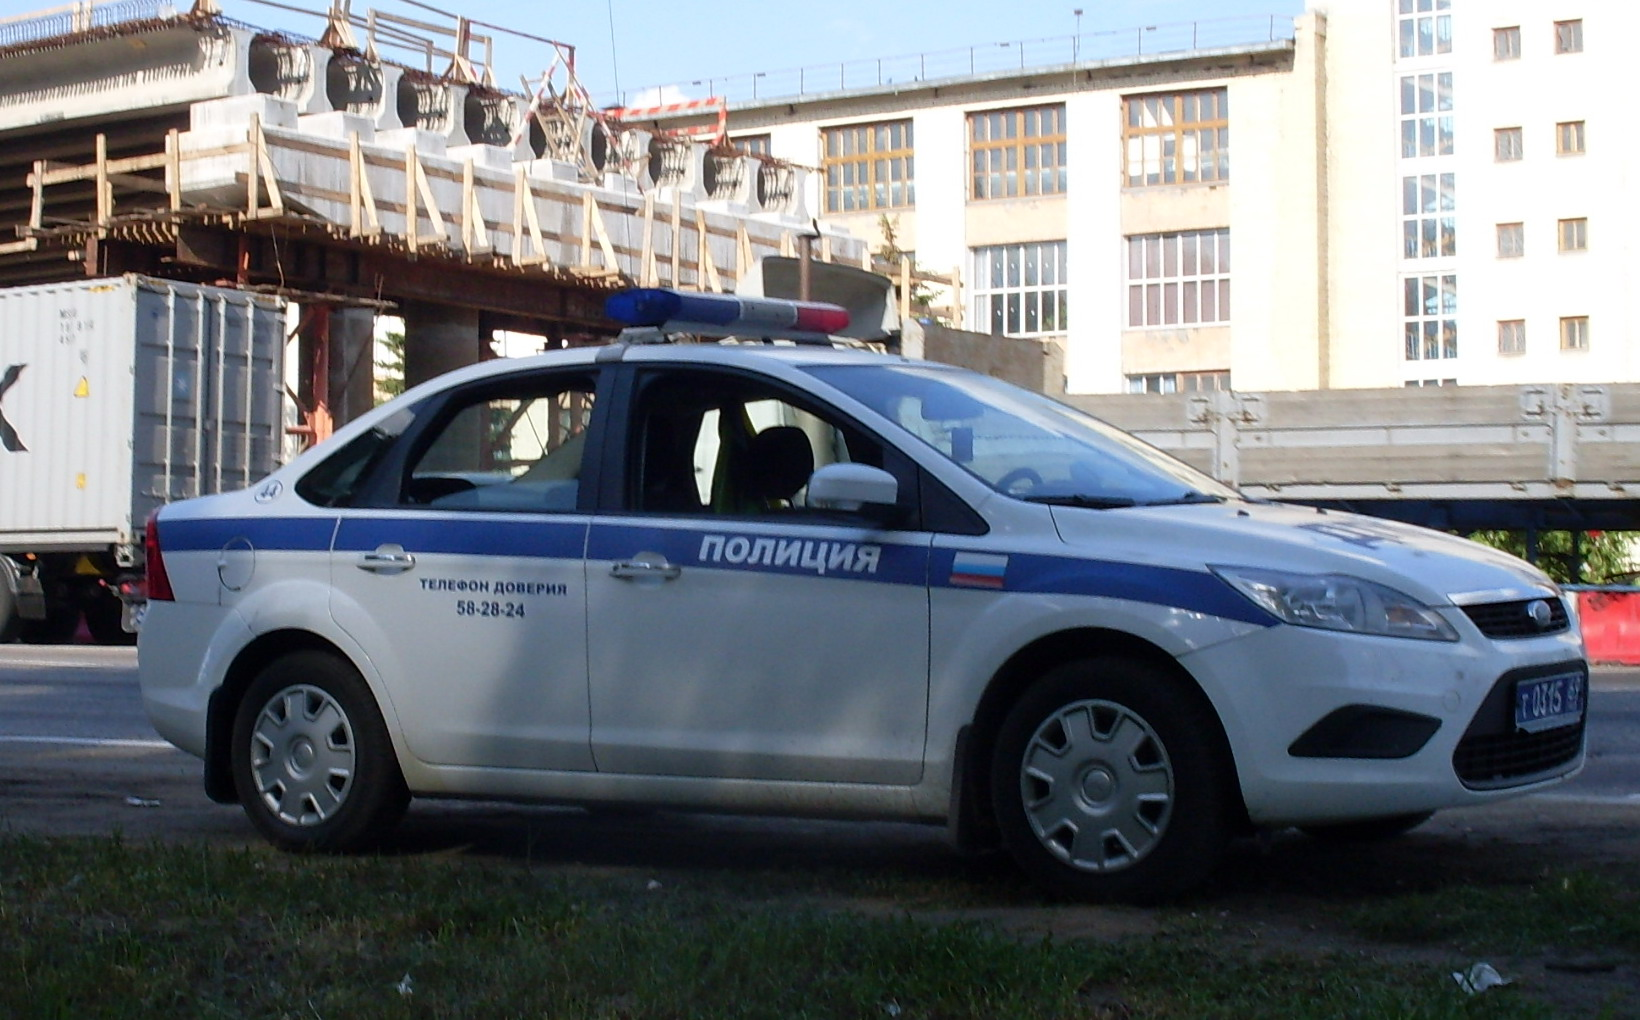 Russian_Police_car_Tver_(2)